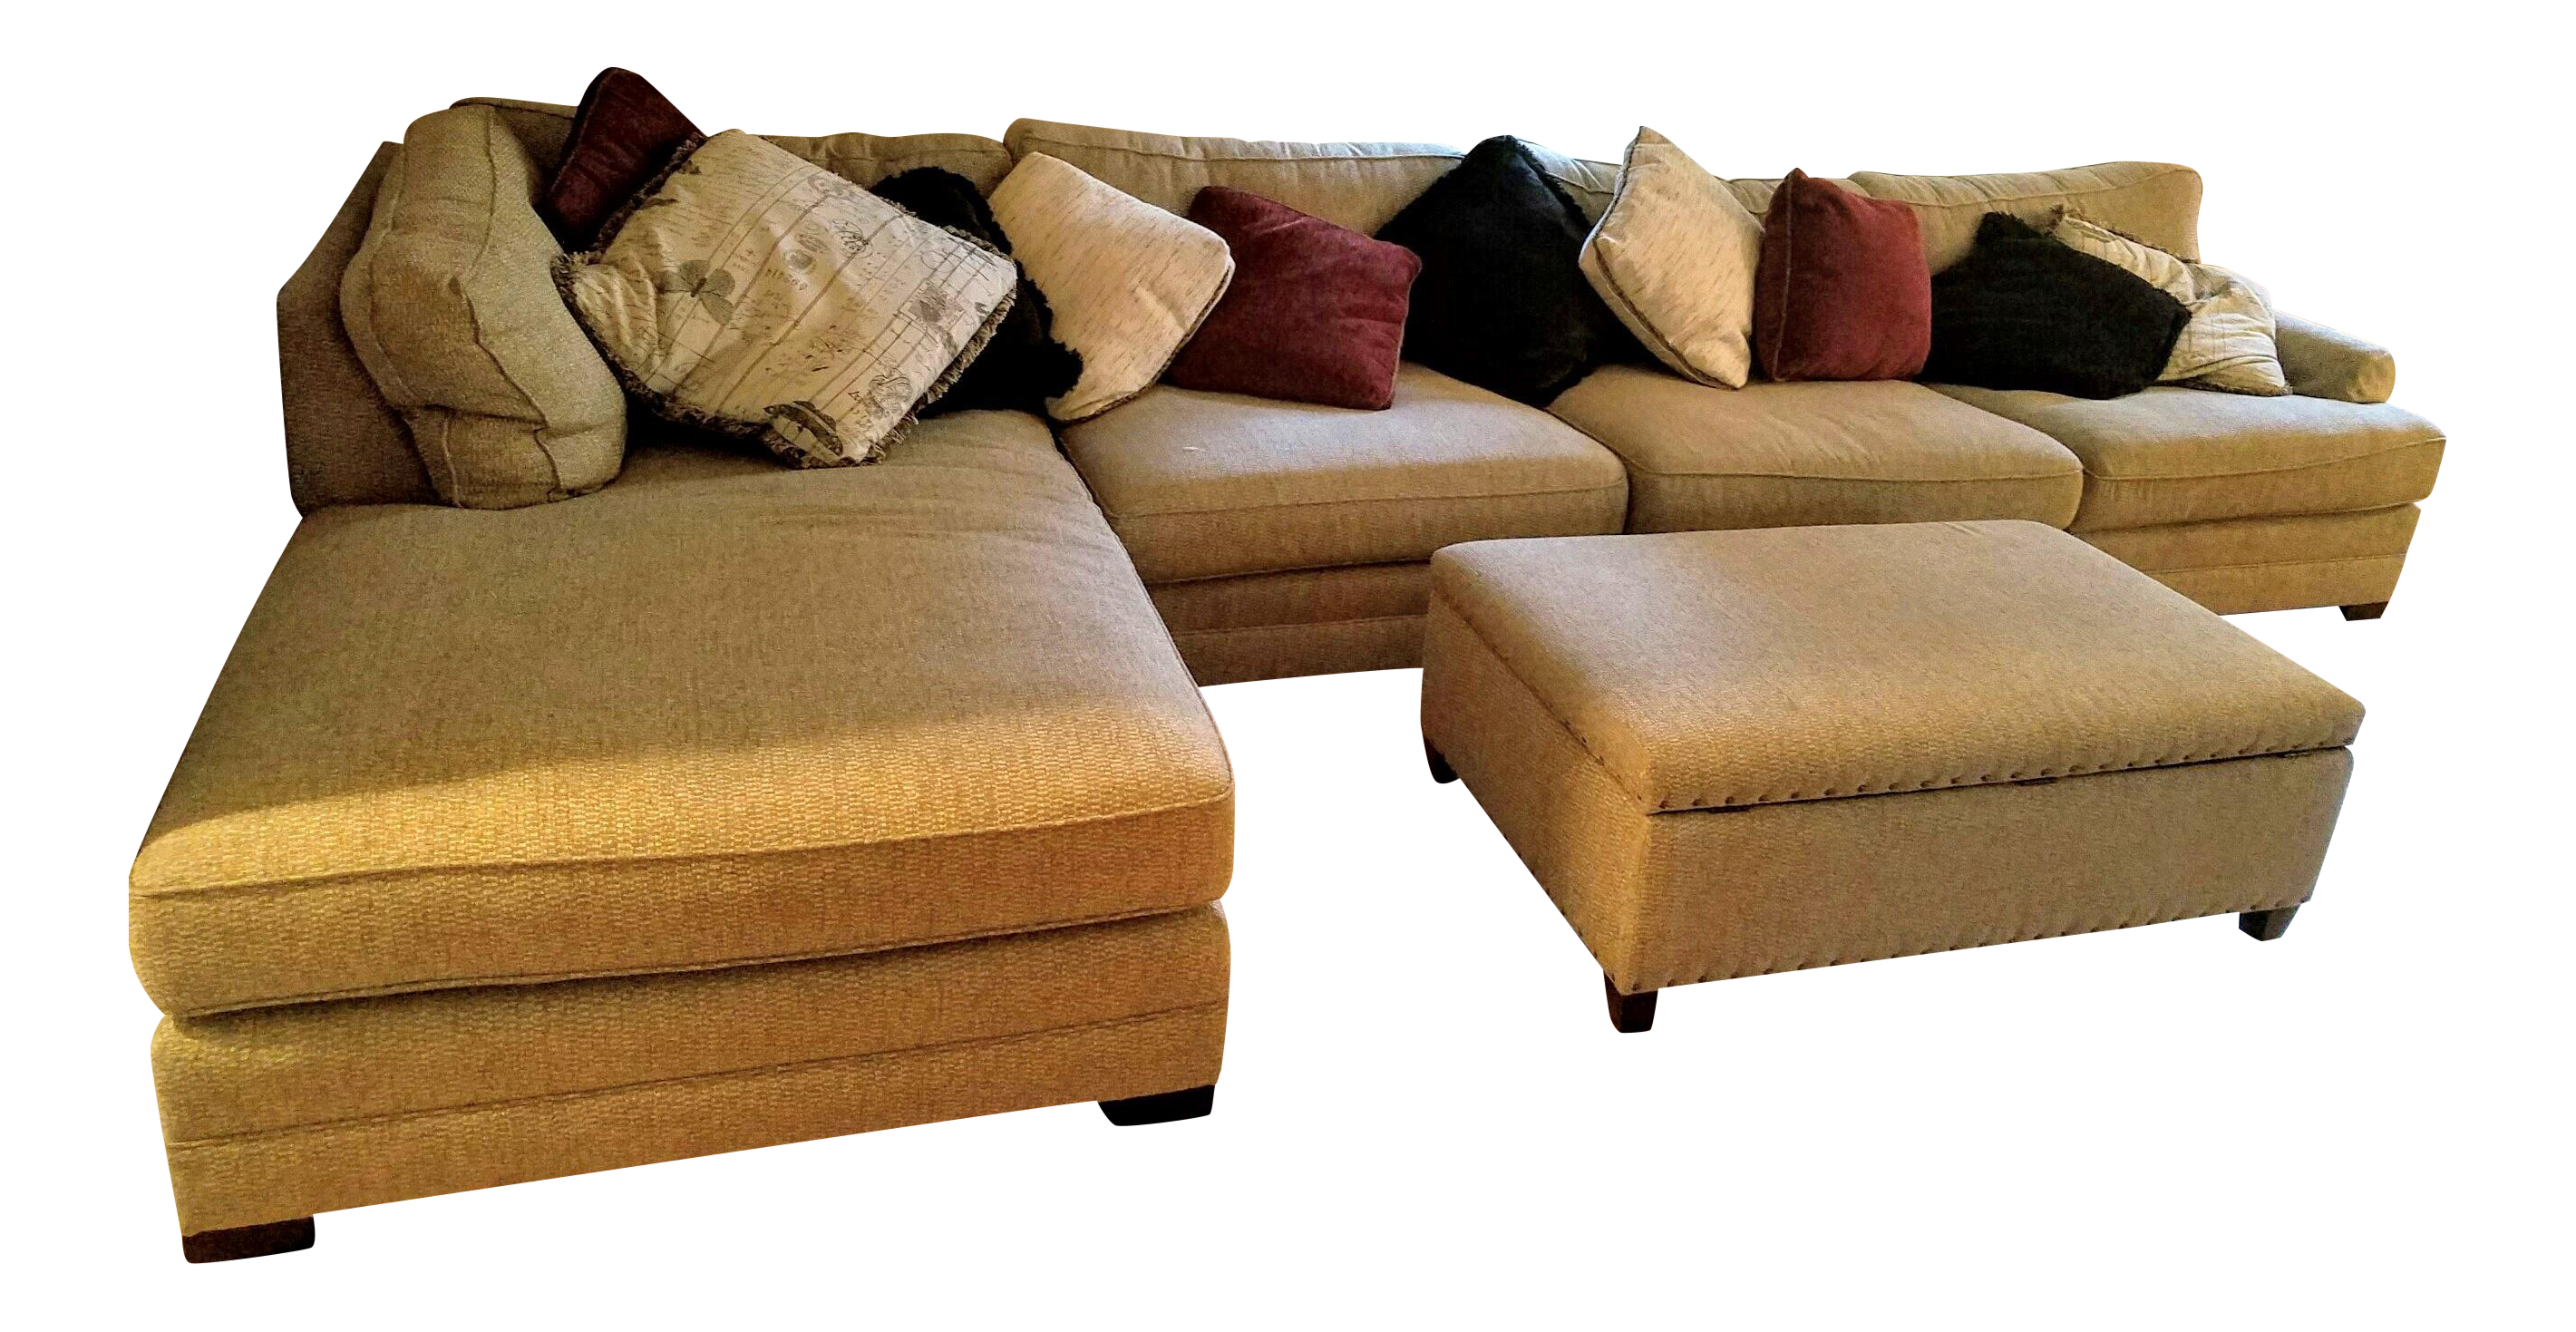 King hickory casbah sectional price king hickory furniture prices casbah transitional u Sectional sofa prices